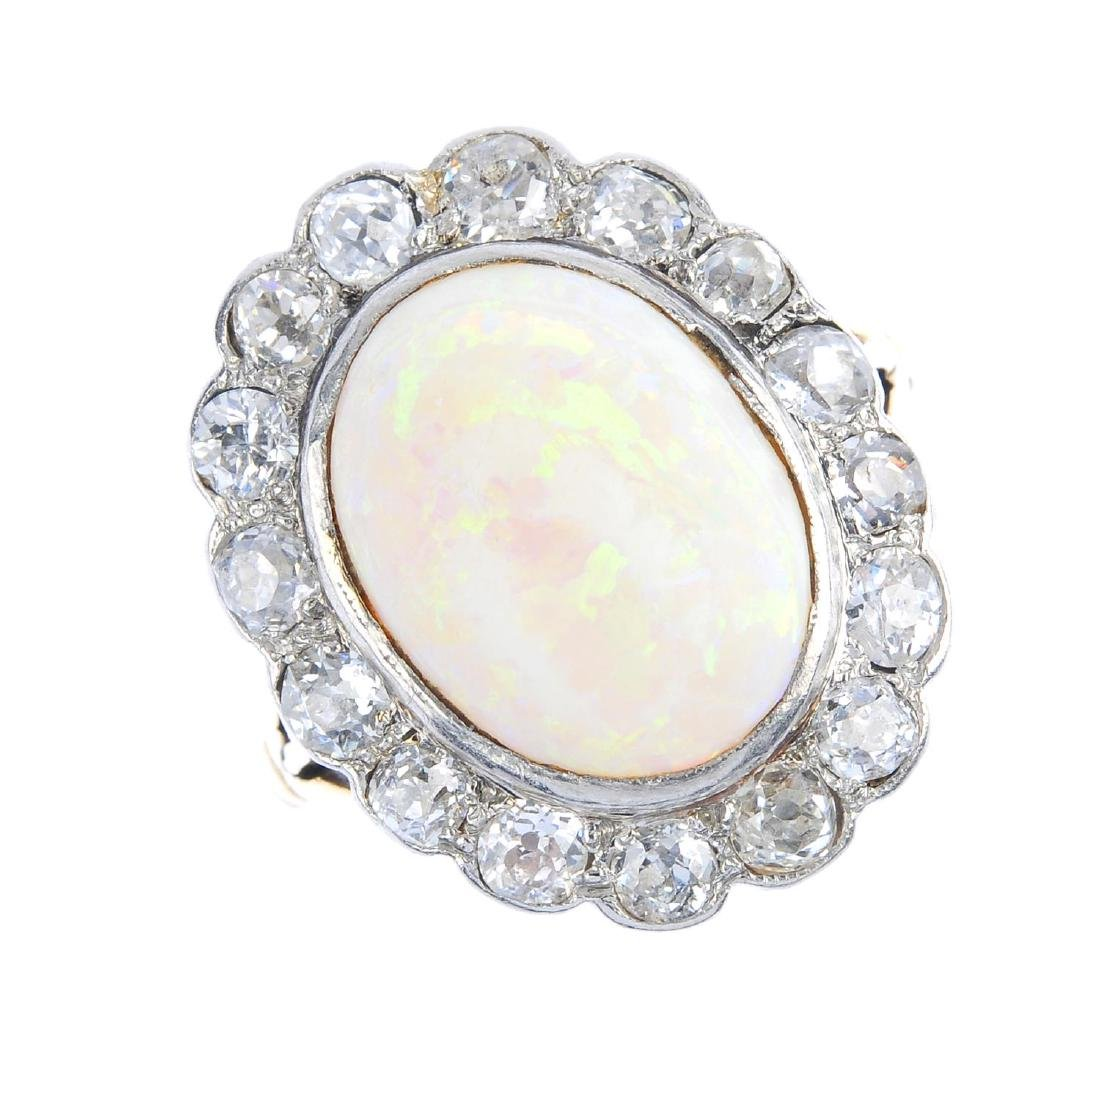 An early 20th century platinum and 18ct gold, opal and